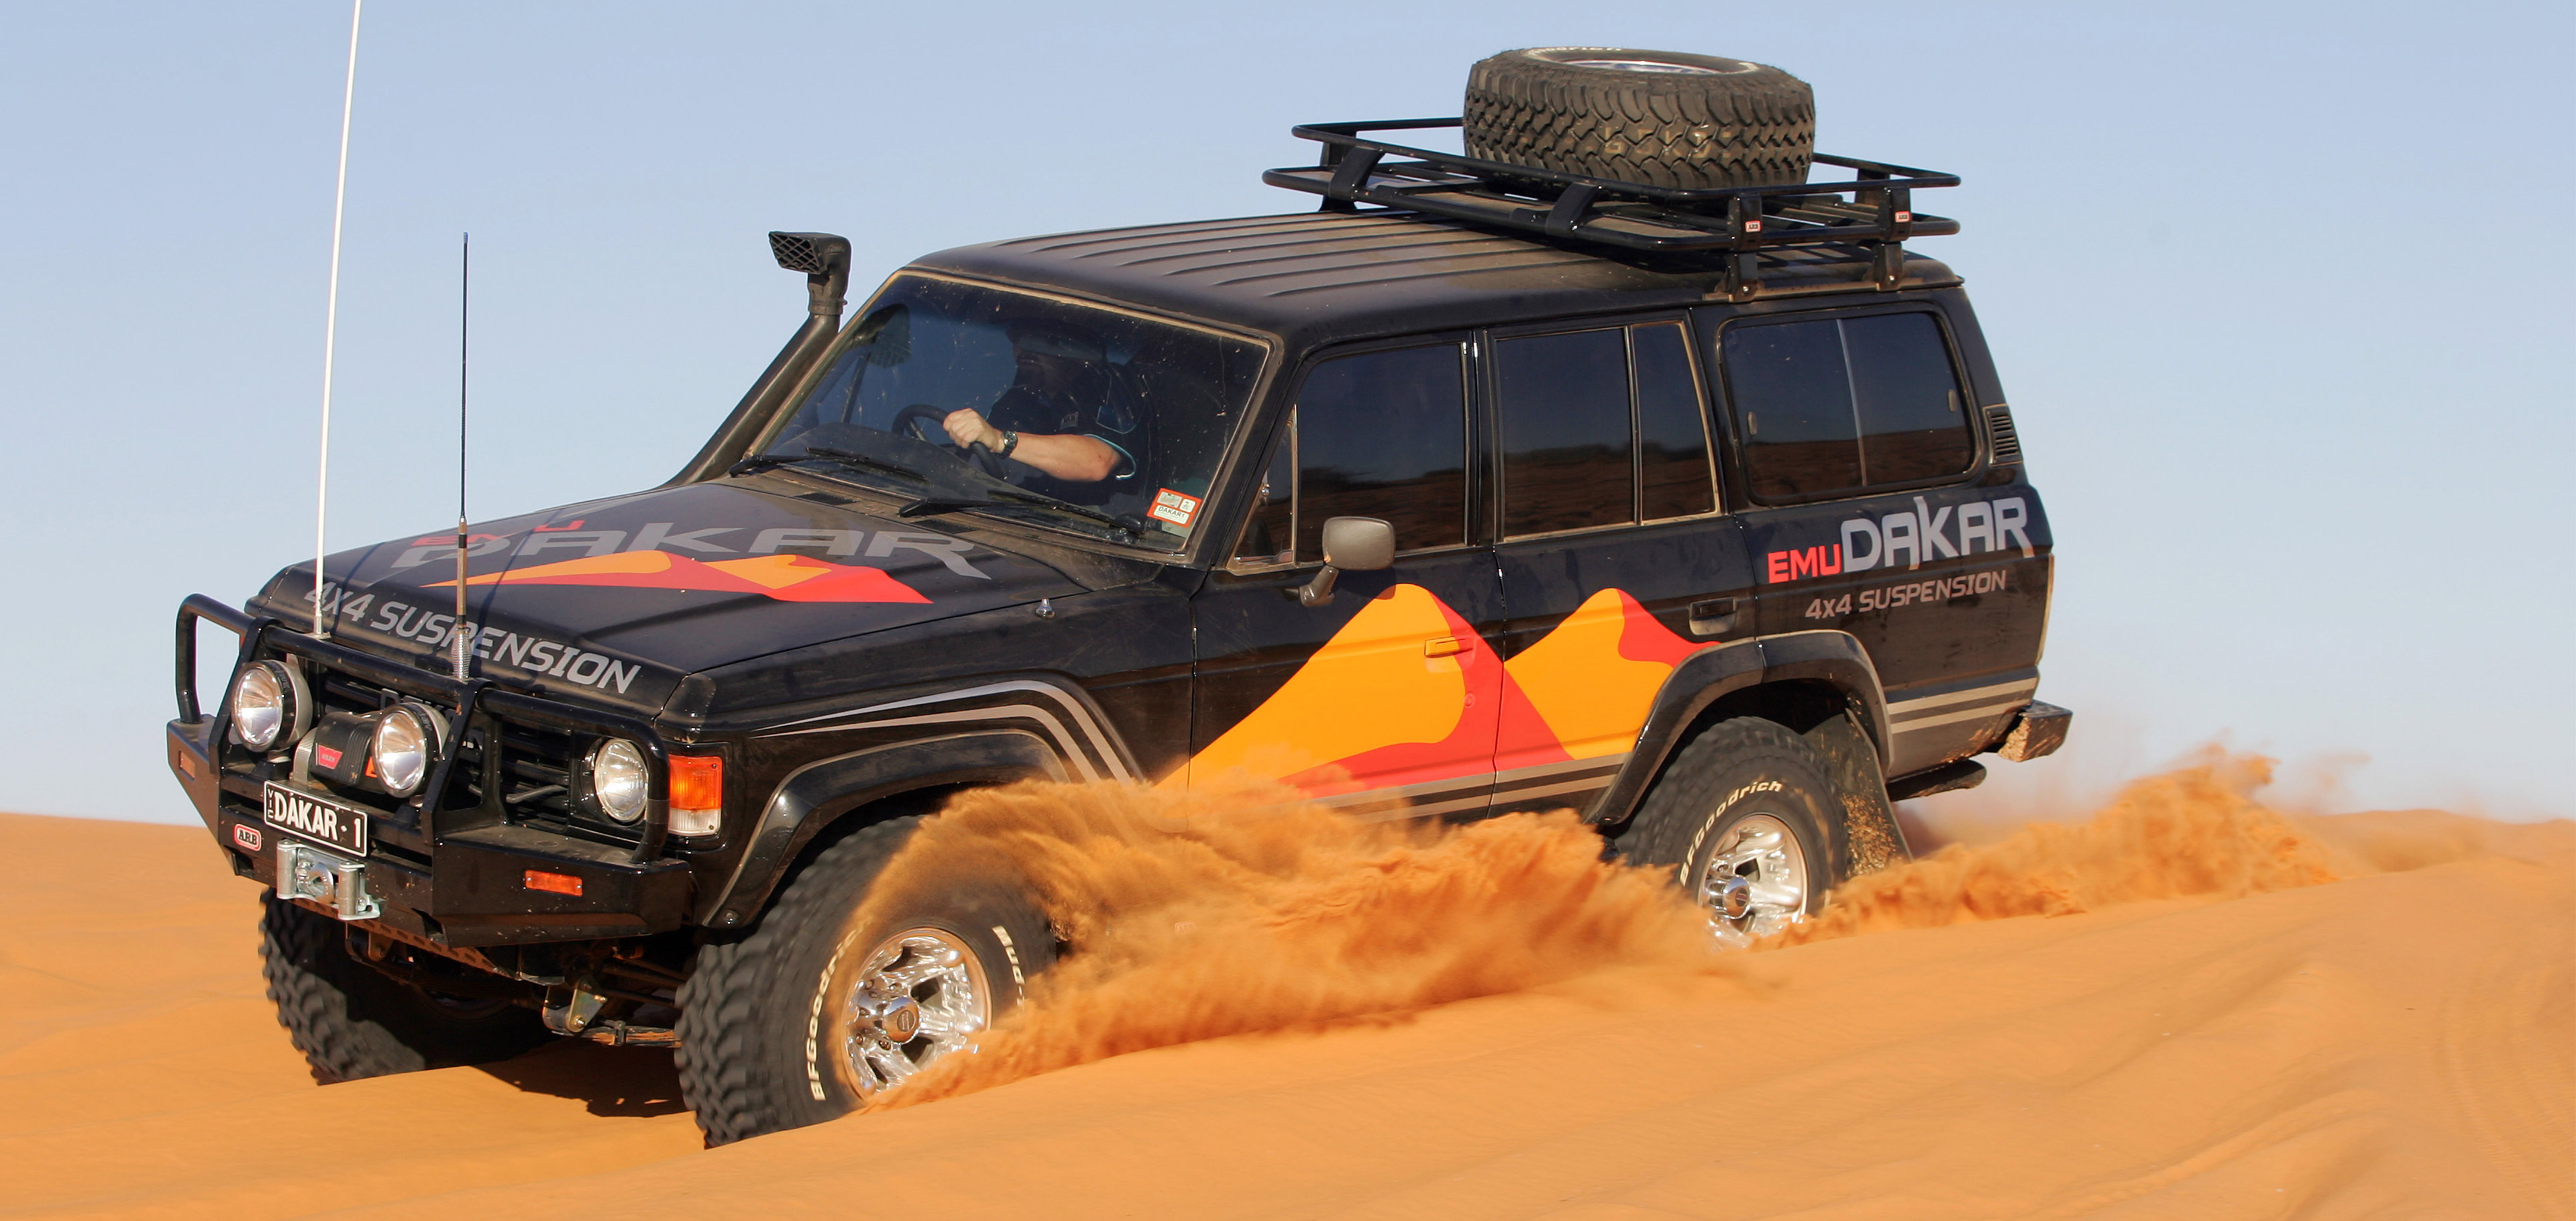 ARB 4×4 Accessories | Old Man Emu 4X4 Suspension - ARB 4x4 Accessories